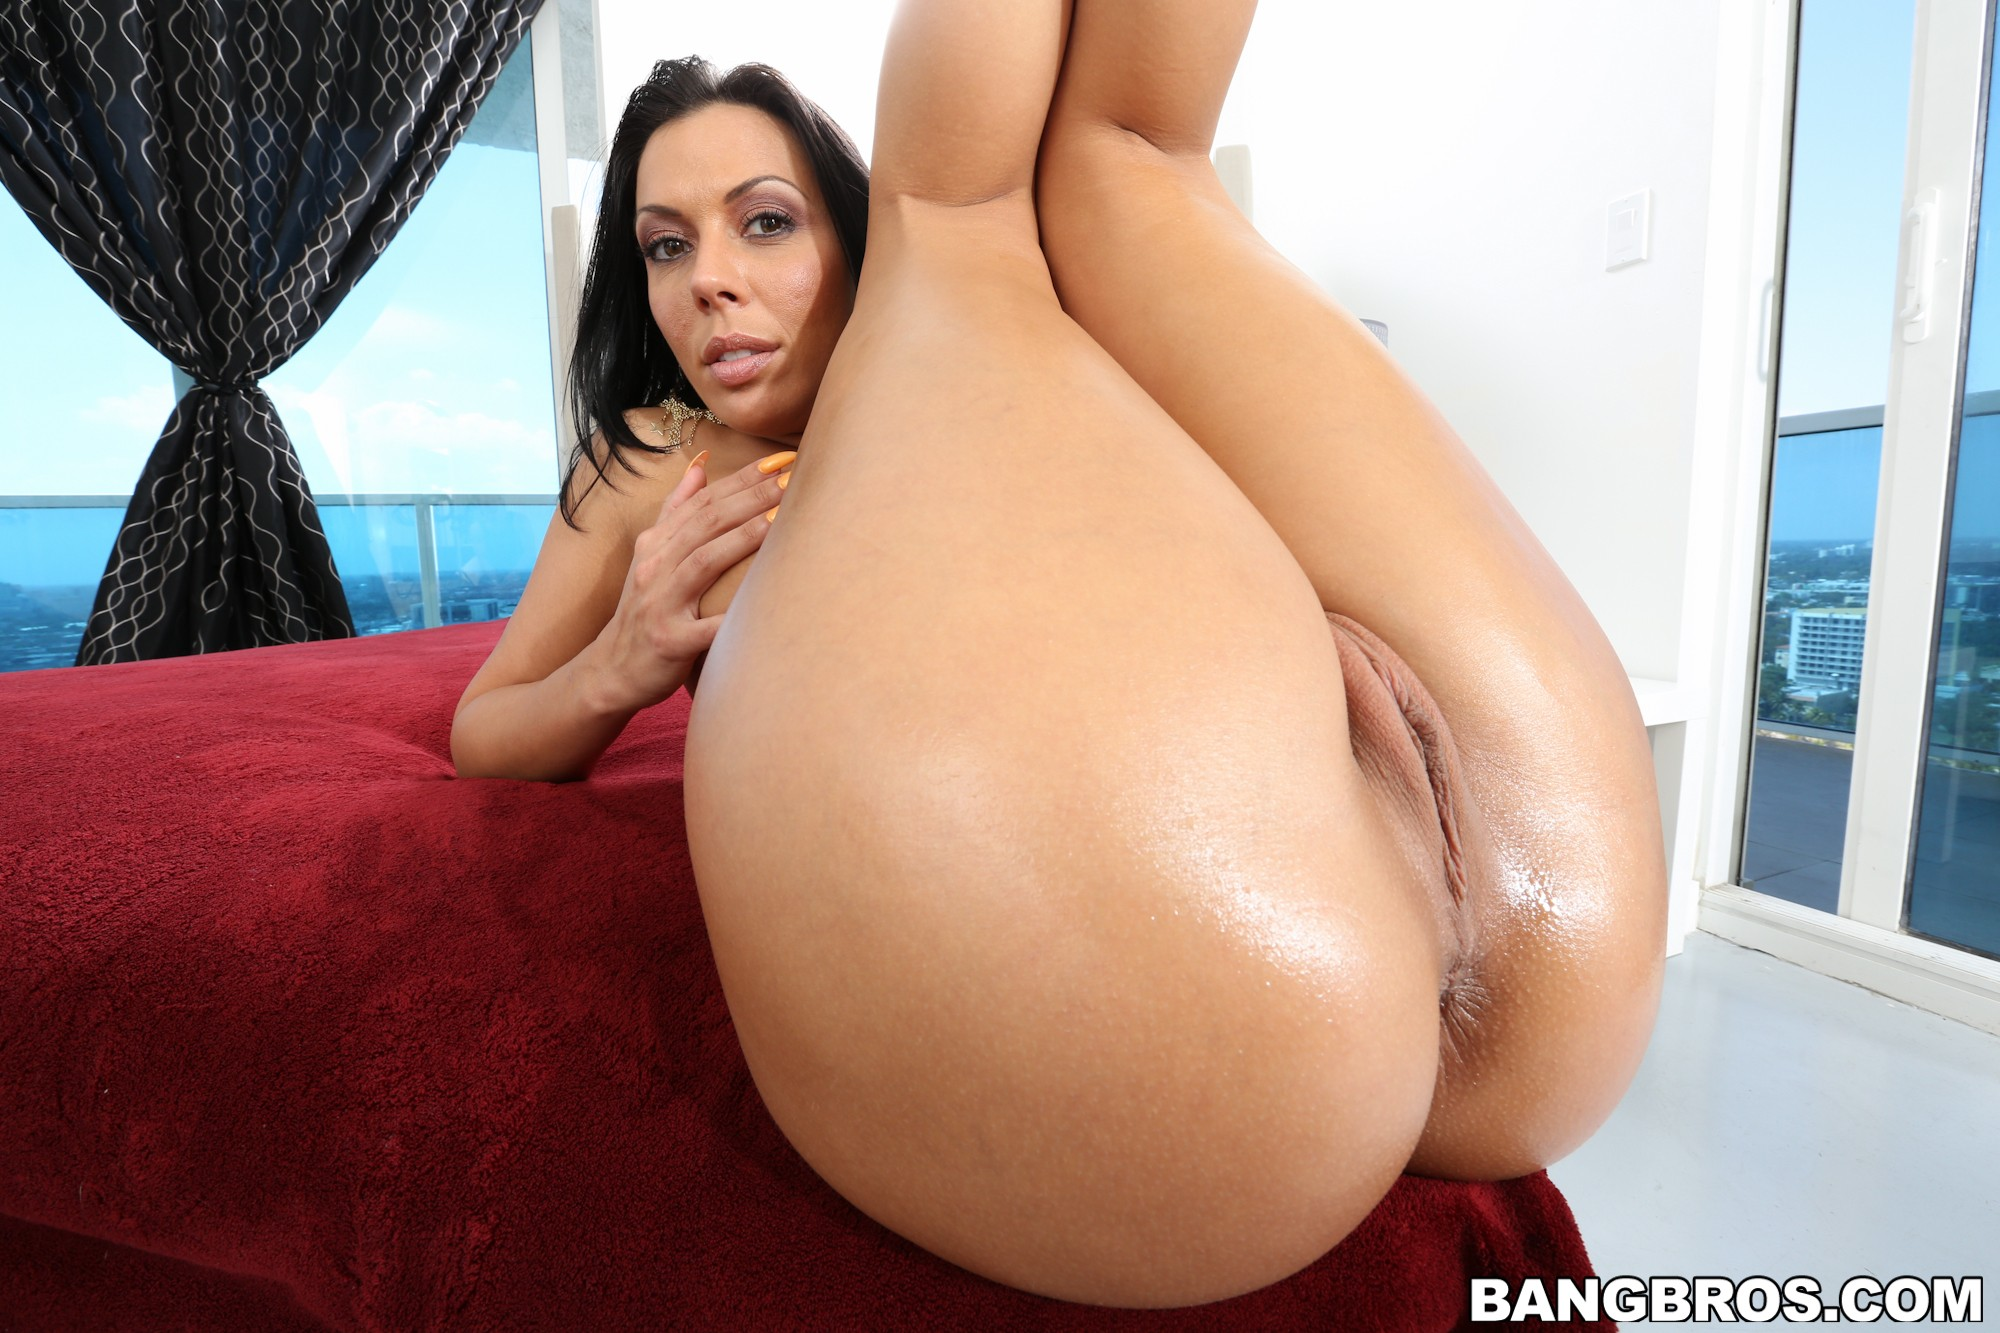 Brunette oiled ass and body anal destroy sexymassageoil